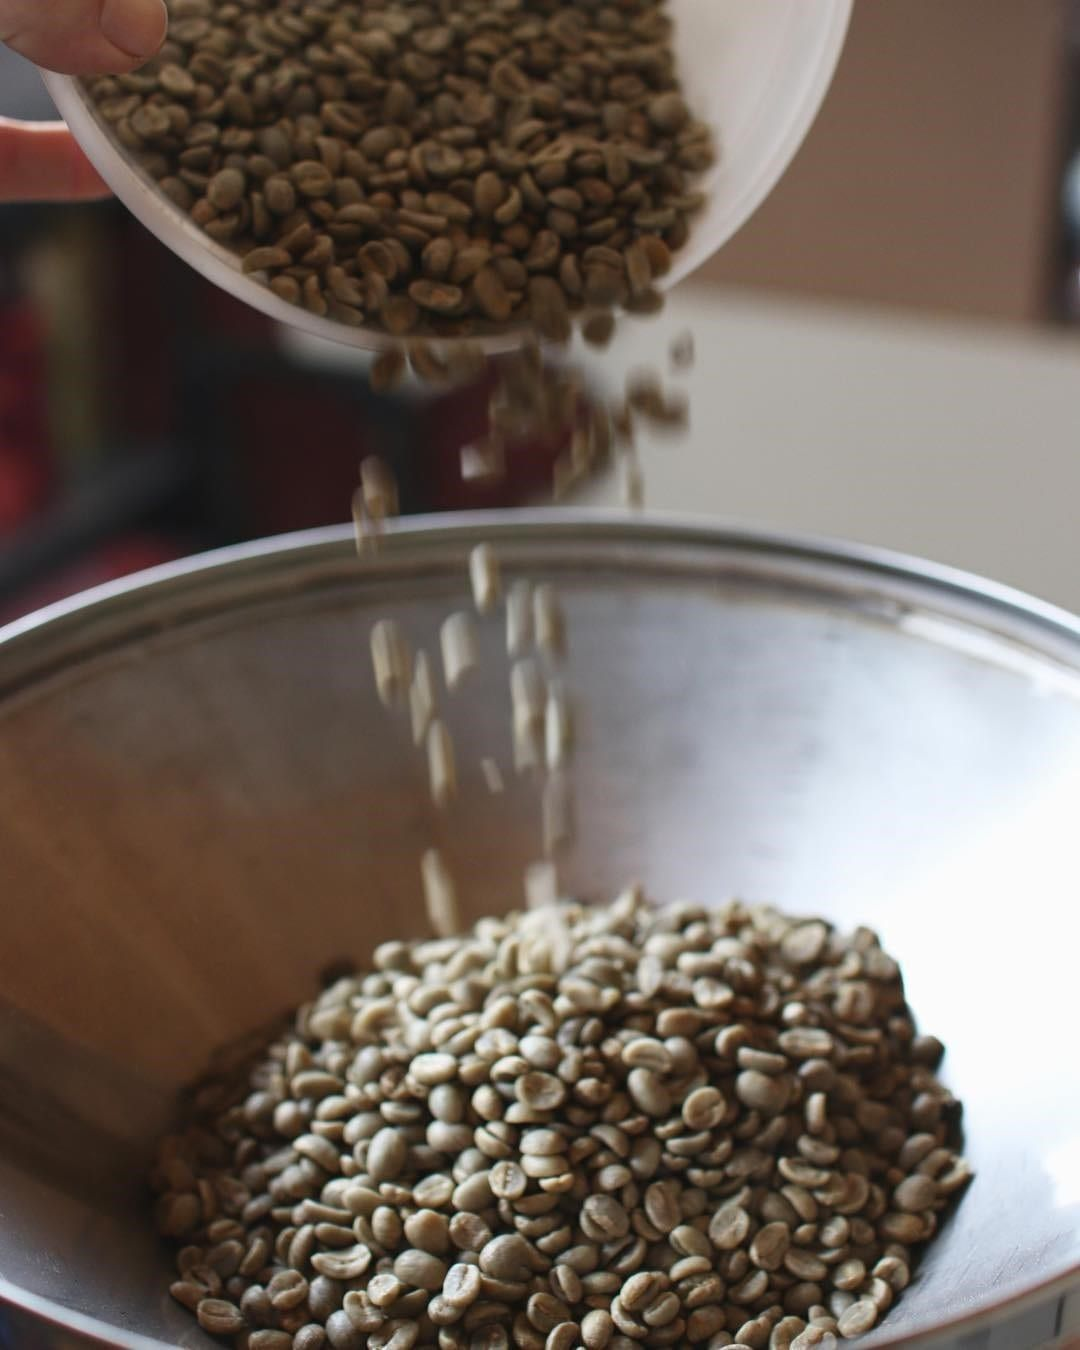 A roasters guide to creating coffee blends perfect